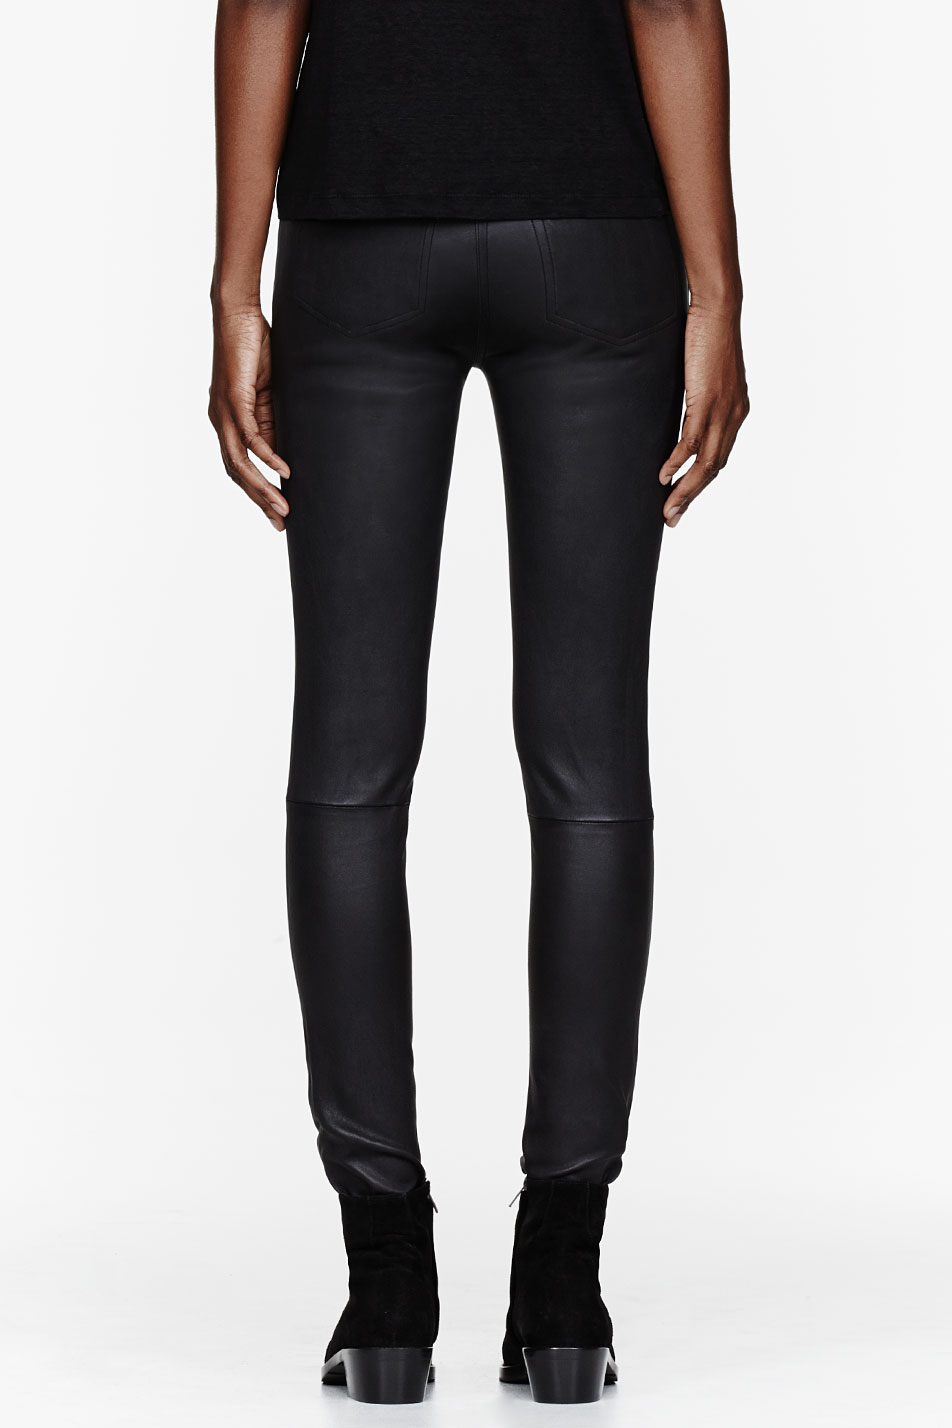 c932ae8a9b33 Lyst - T By Alexander Wang Black Stretch Leather Jeans in Black